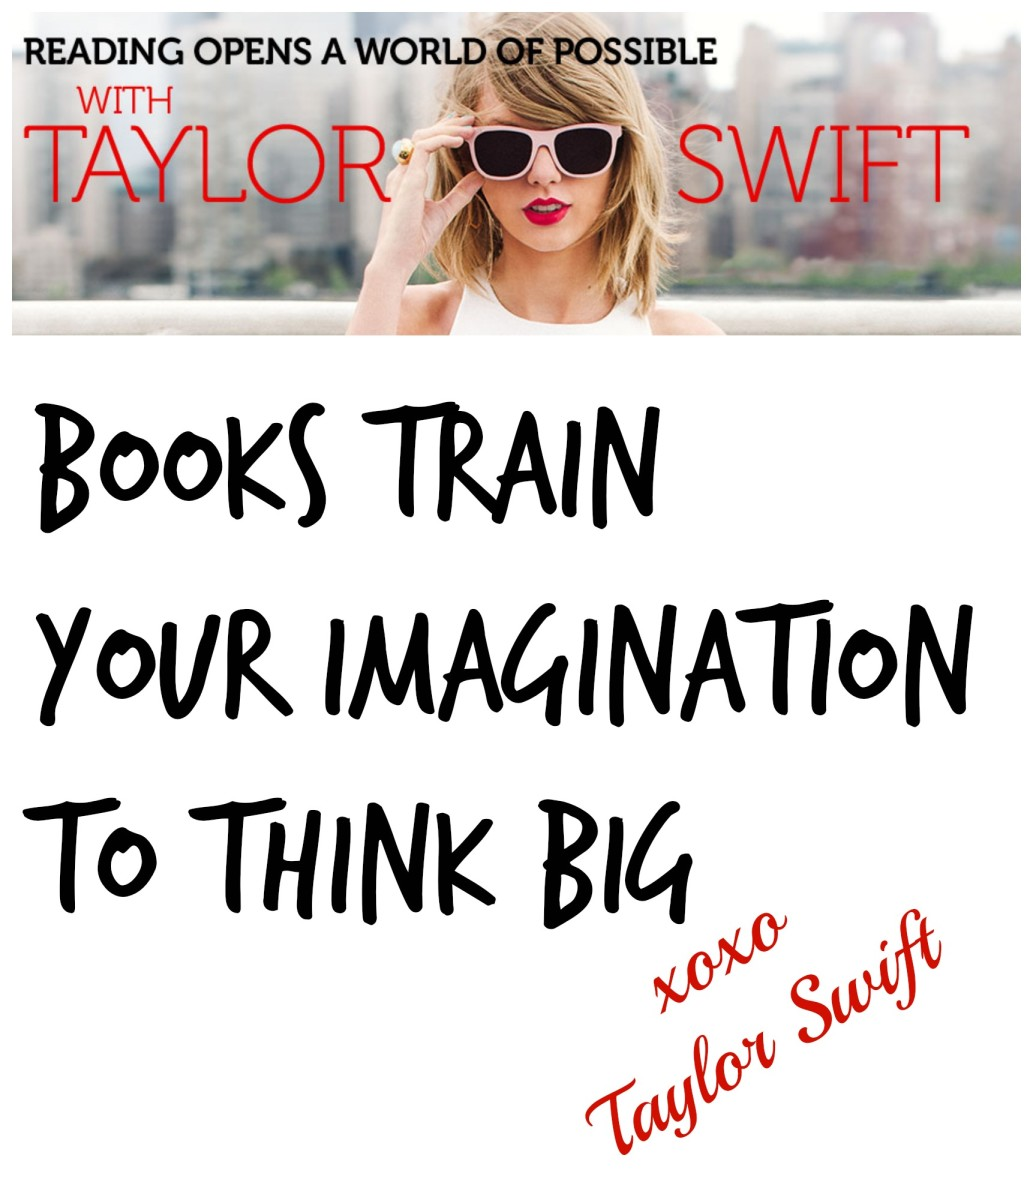 why we love books, taylor swift quotes, reading with taylor swift, taylor swift